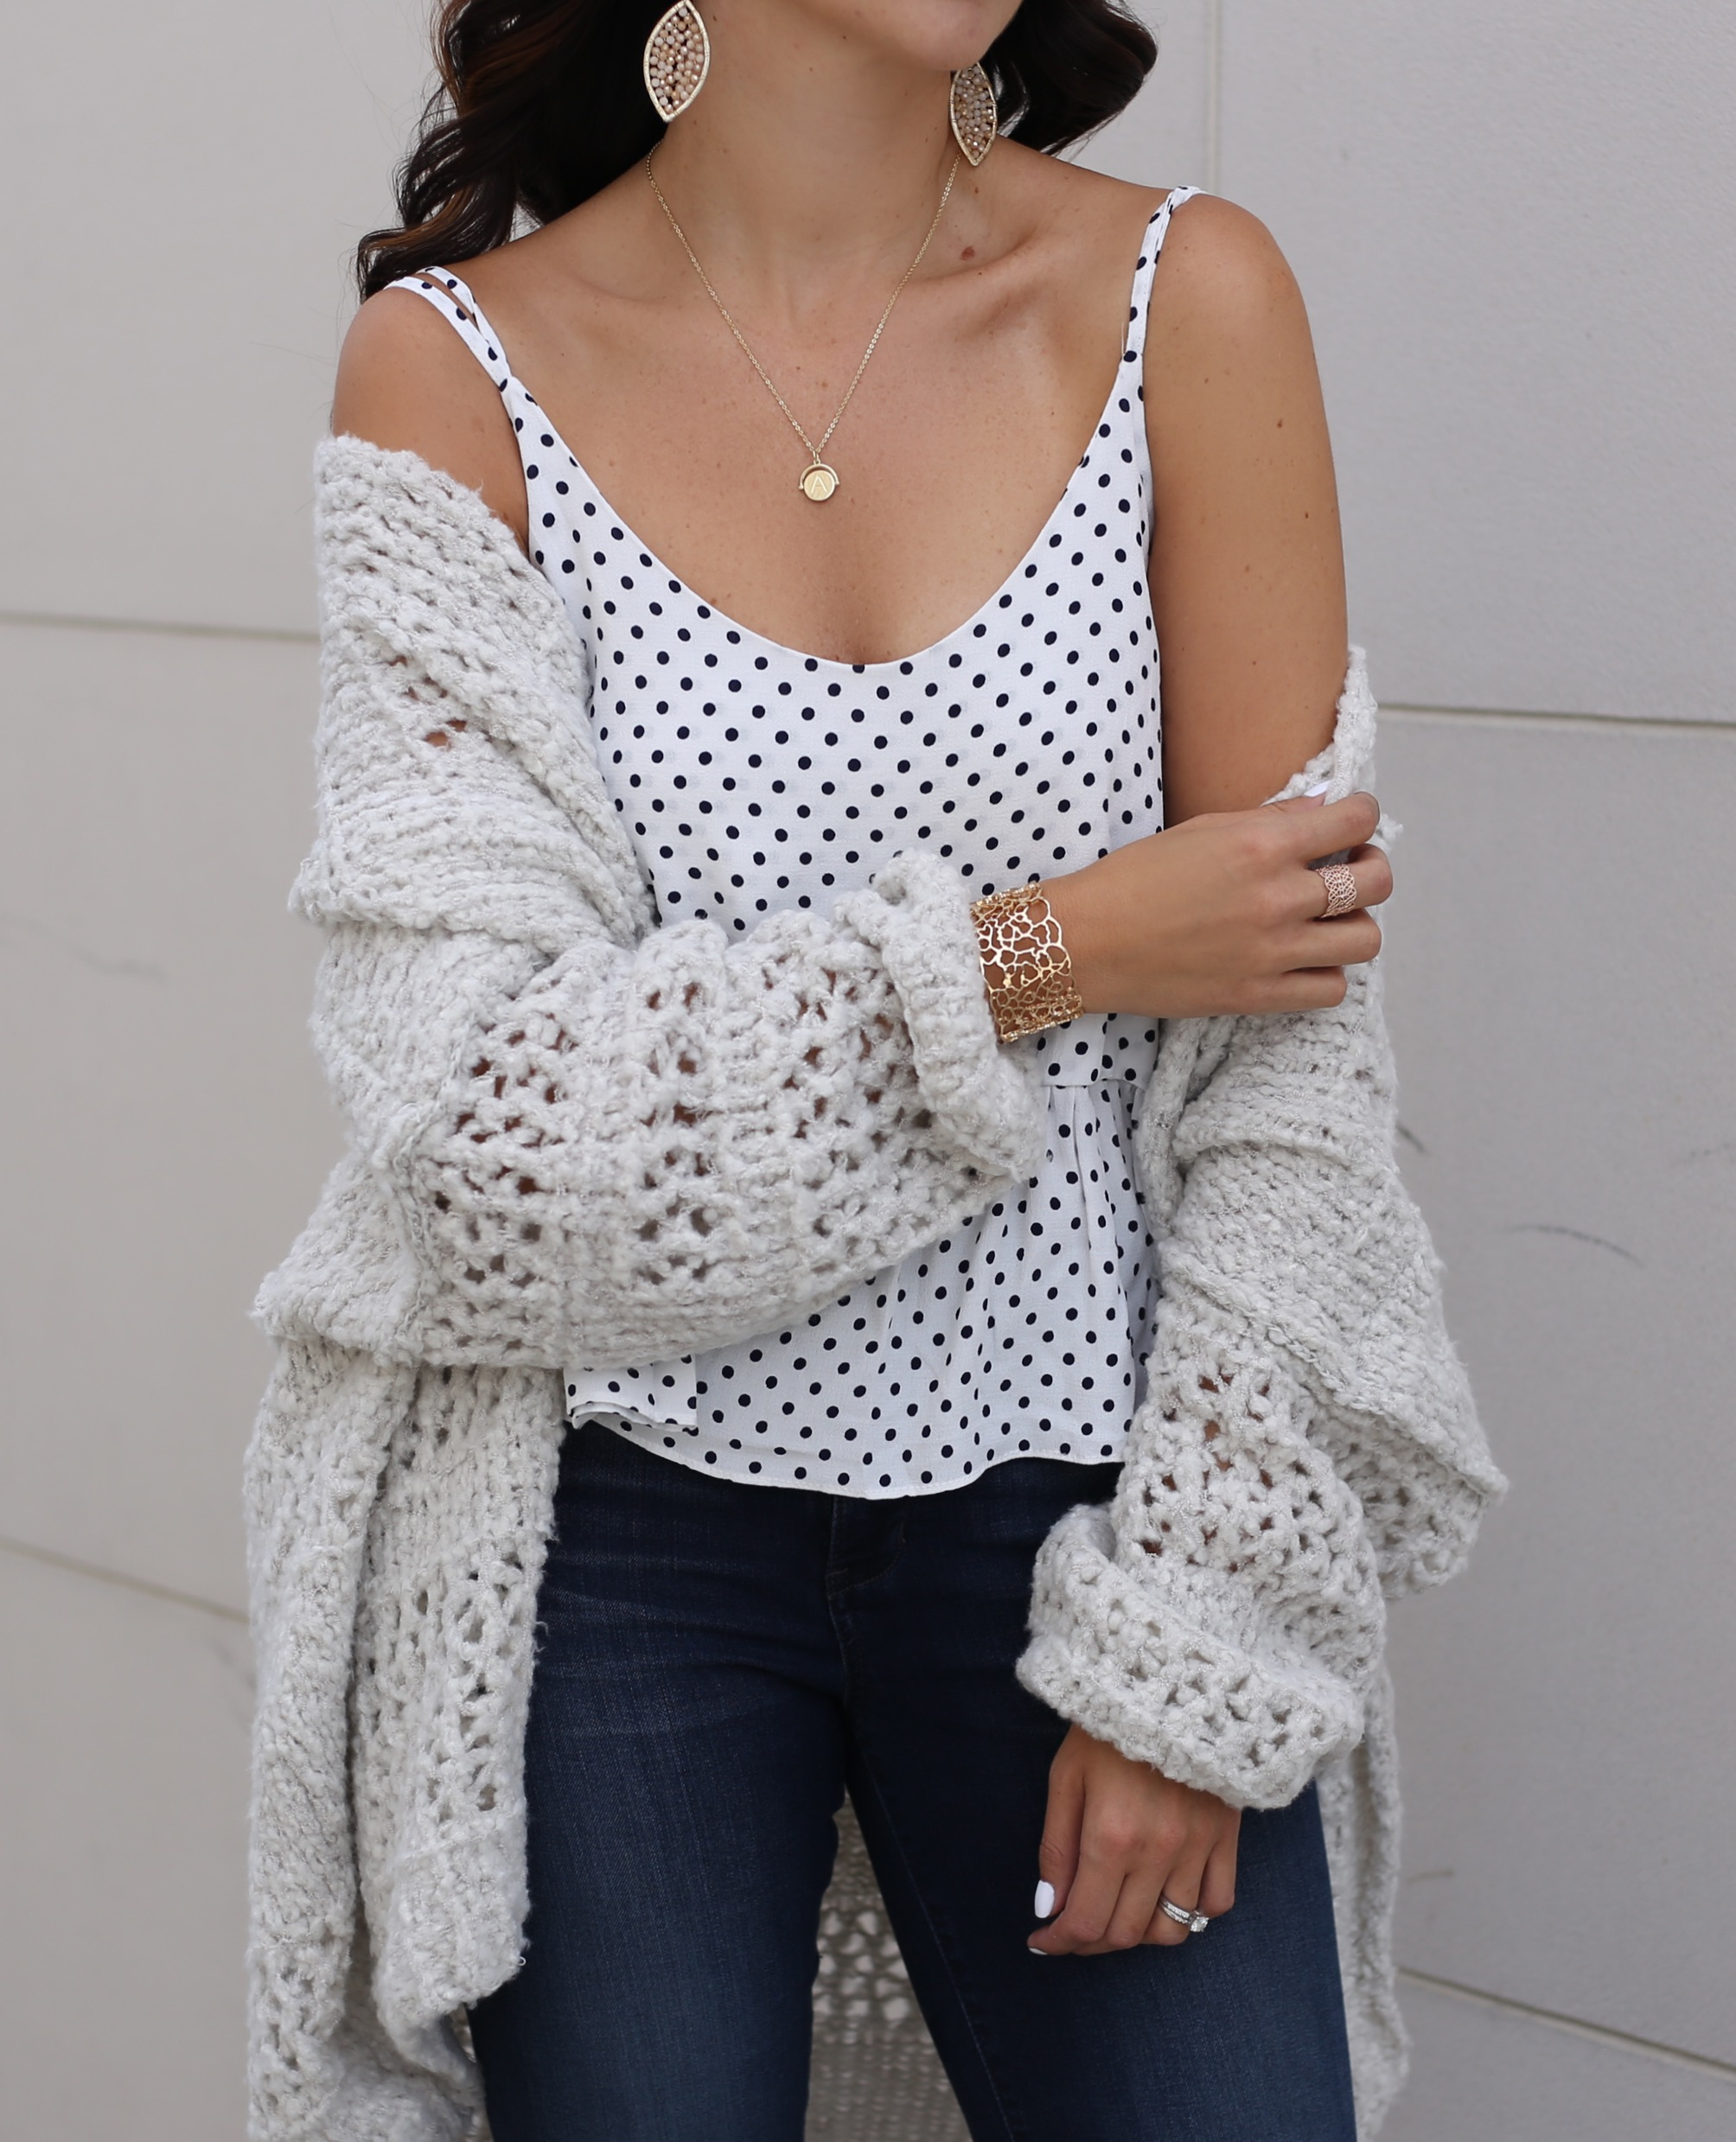 fashion blogger Anna Monteiro of blushing rose style blog wearing perfect fall cardigans including Free People Saturday Morning cardigan from Nordstrom